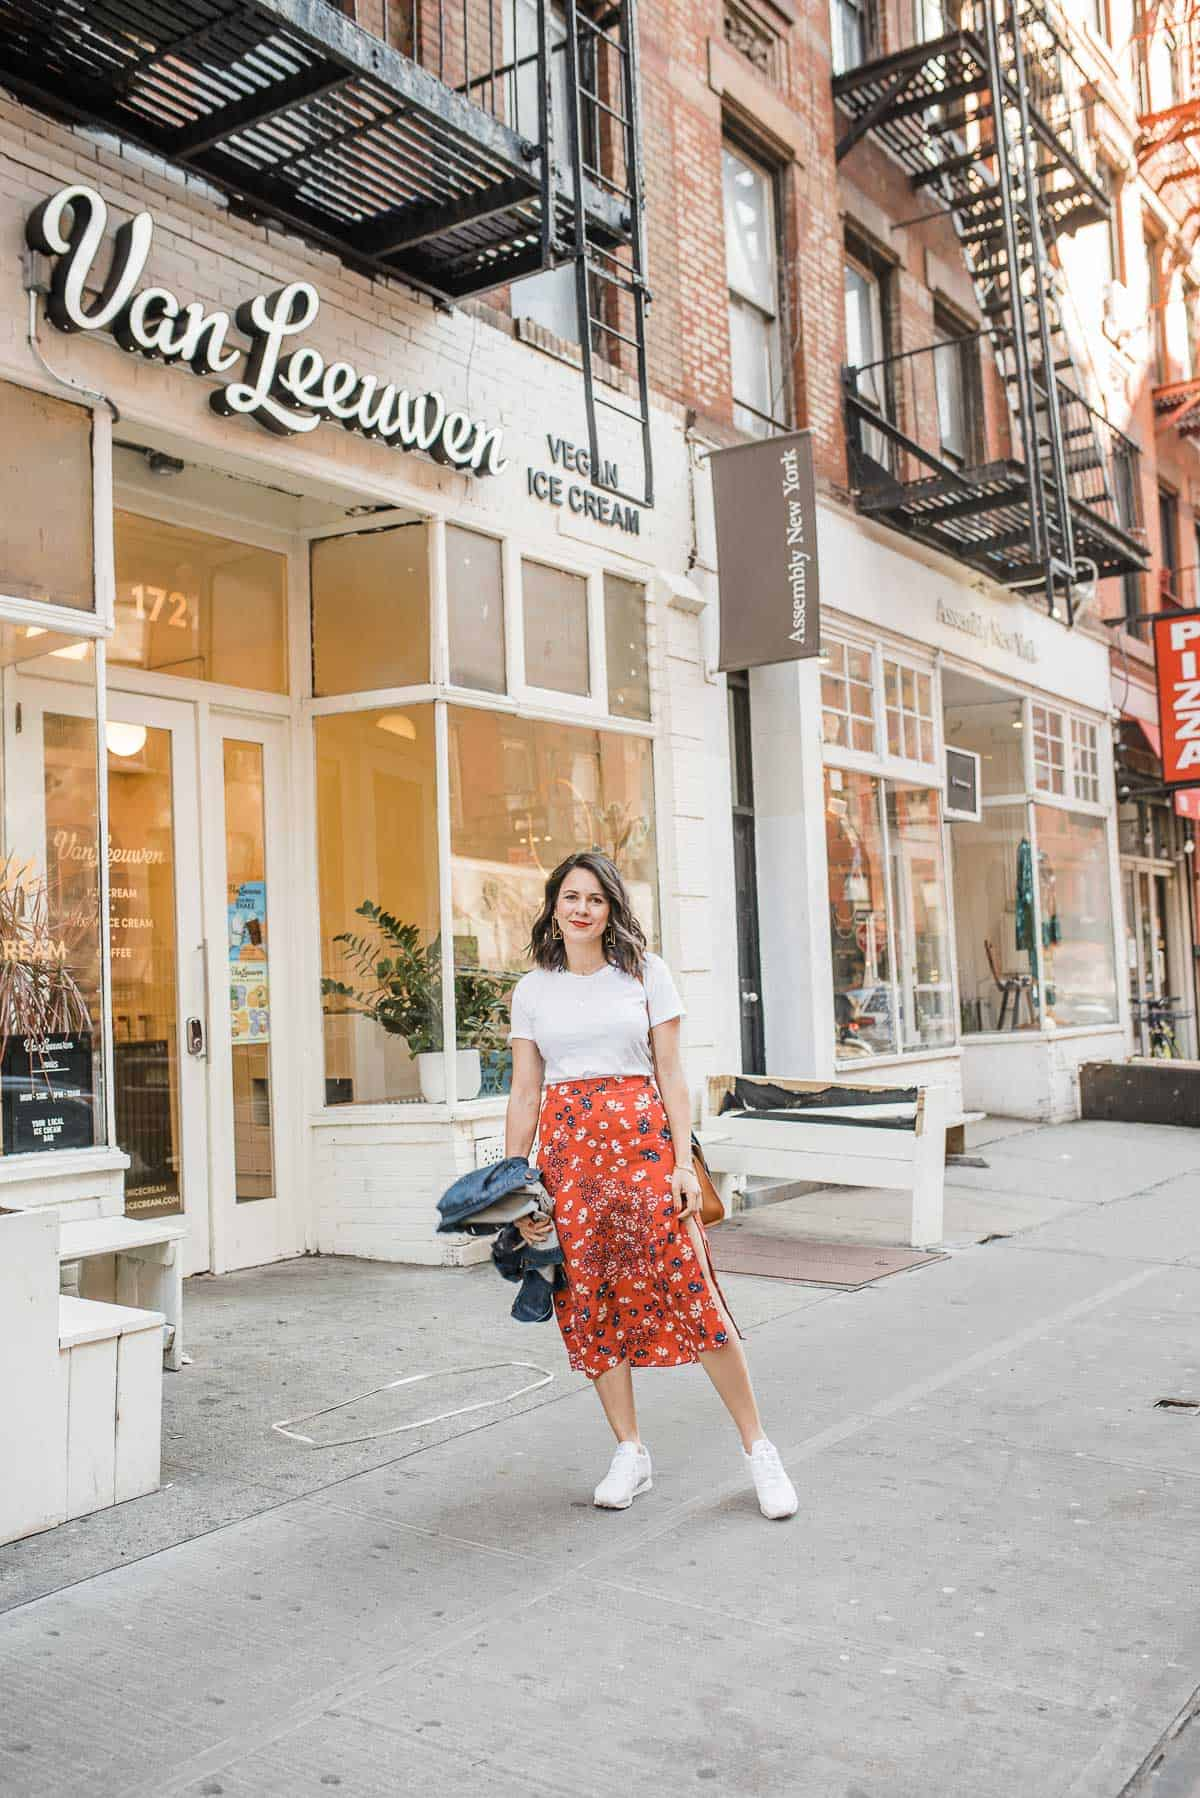 My Style Vita is sharing how to style midi skirts for spring